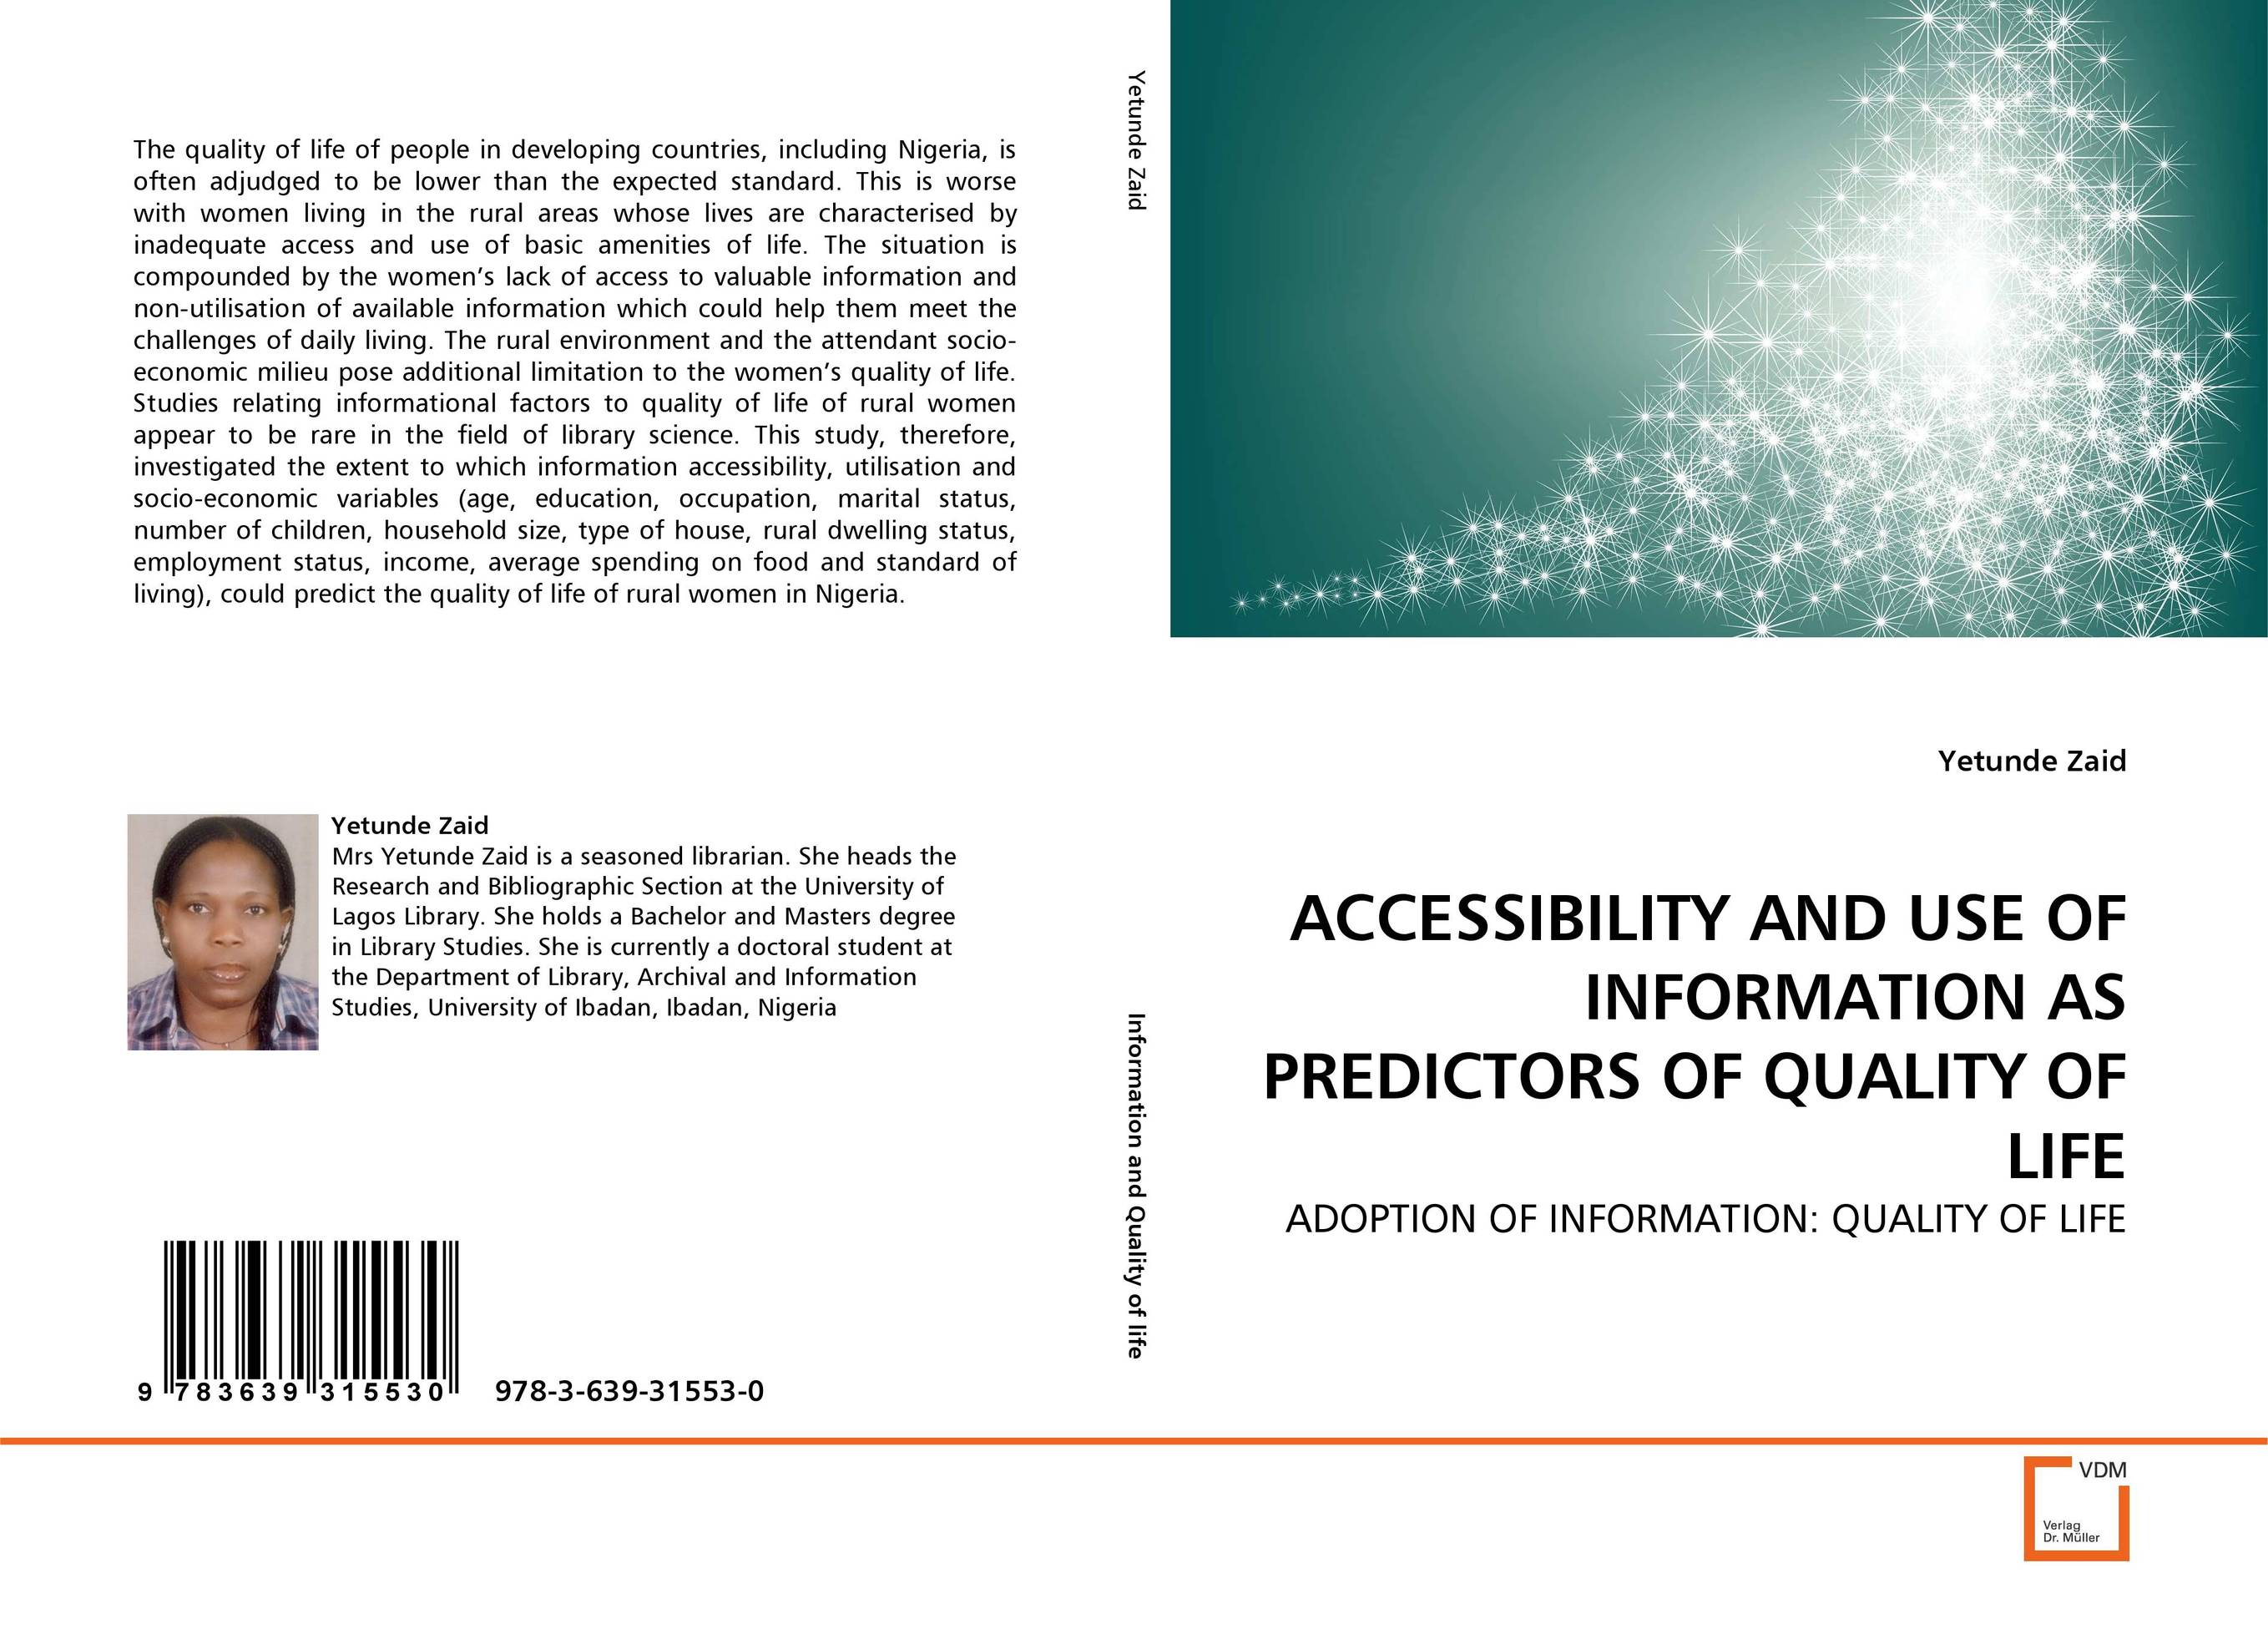 ACCESSIBILITY AND USE OF INFORMATION AS PREDICTORS OF QUALITY OF LIFE measles immunity status of children in kano nigeria